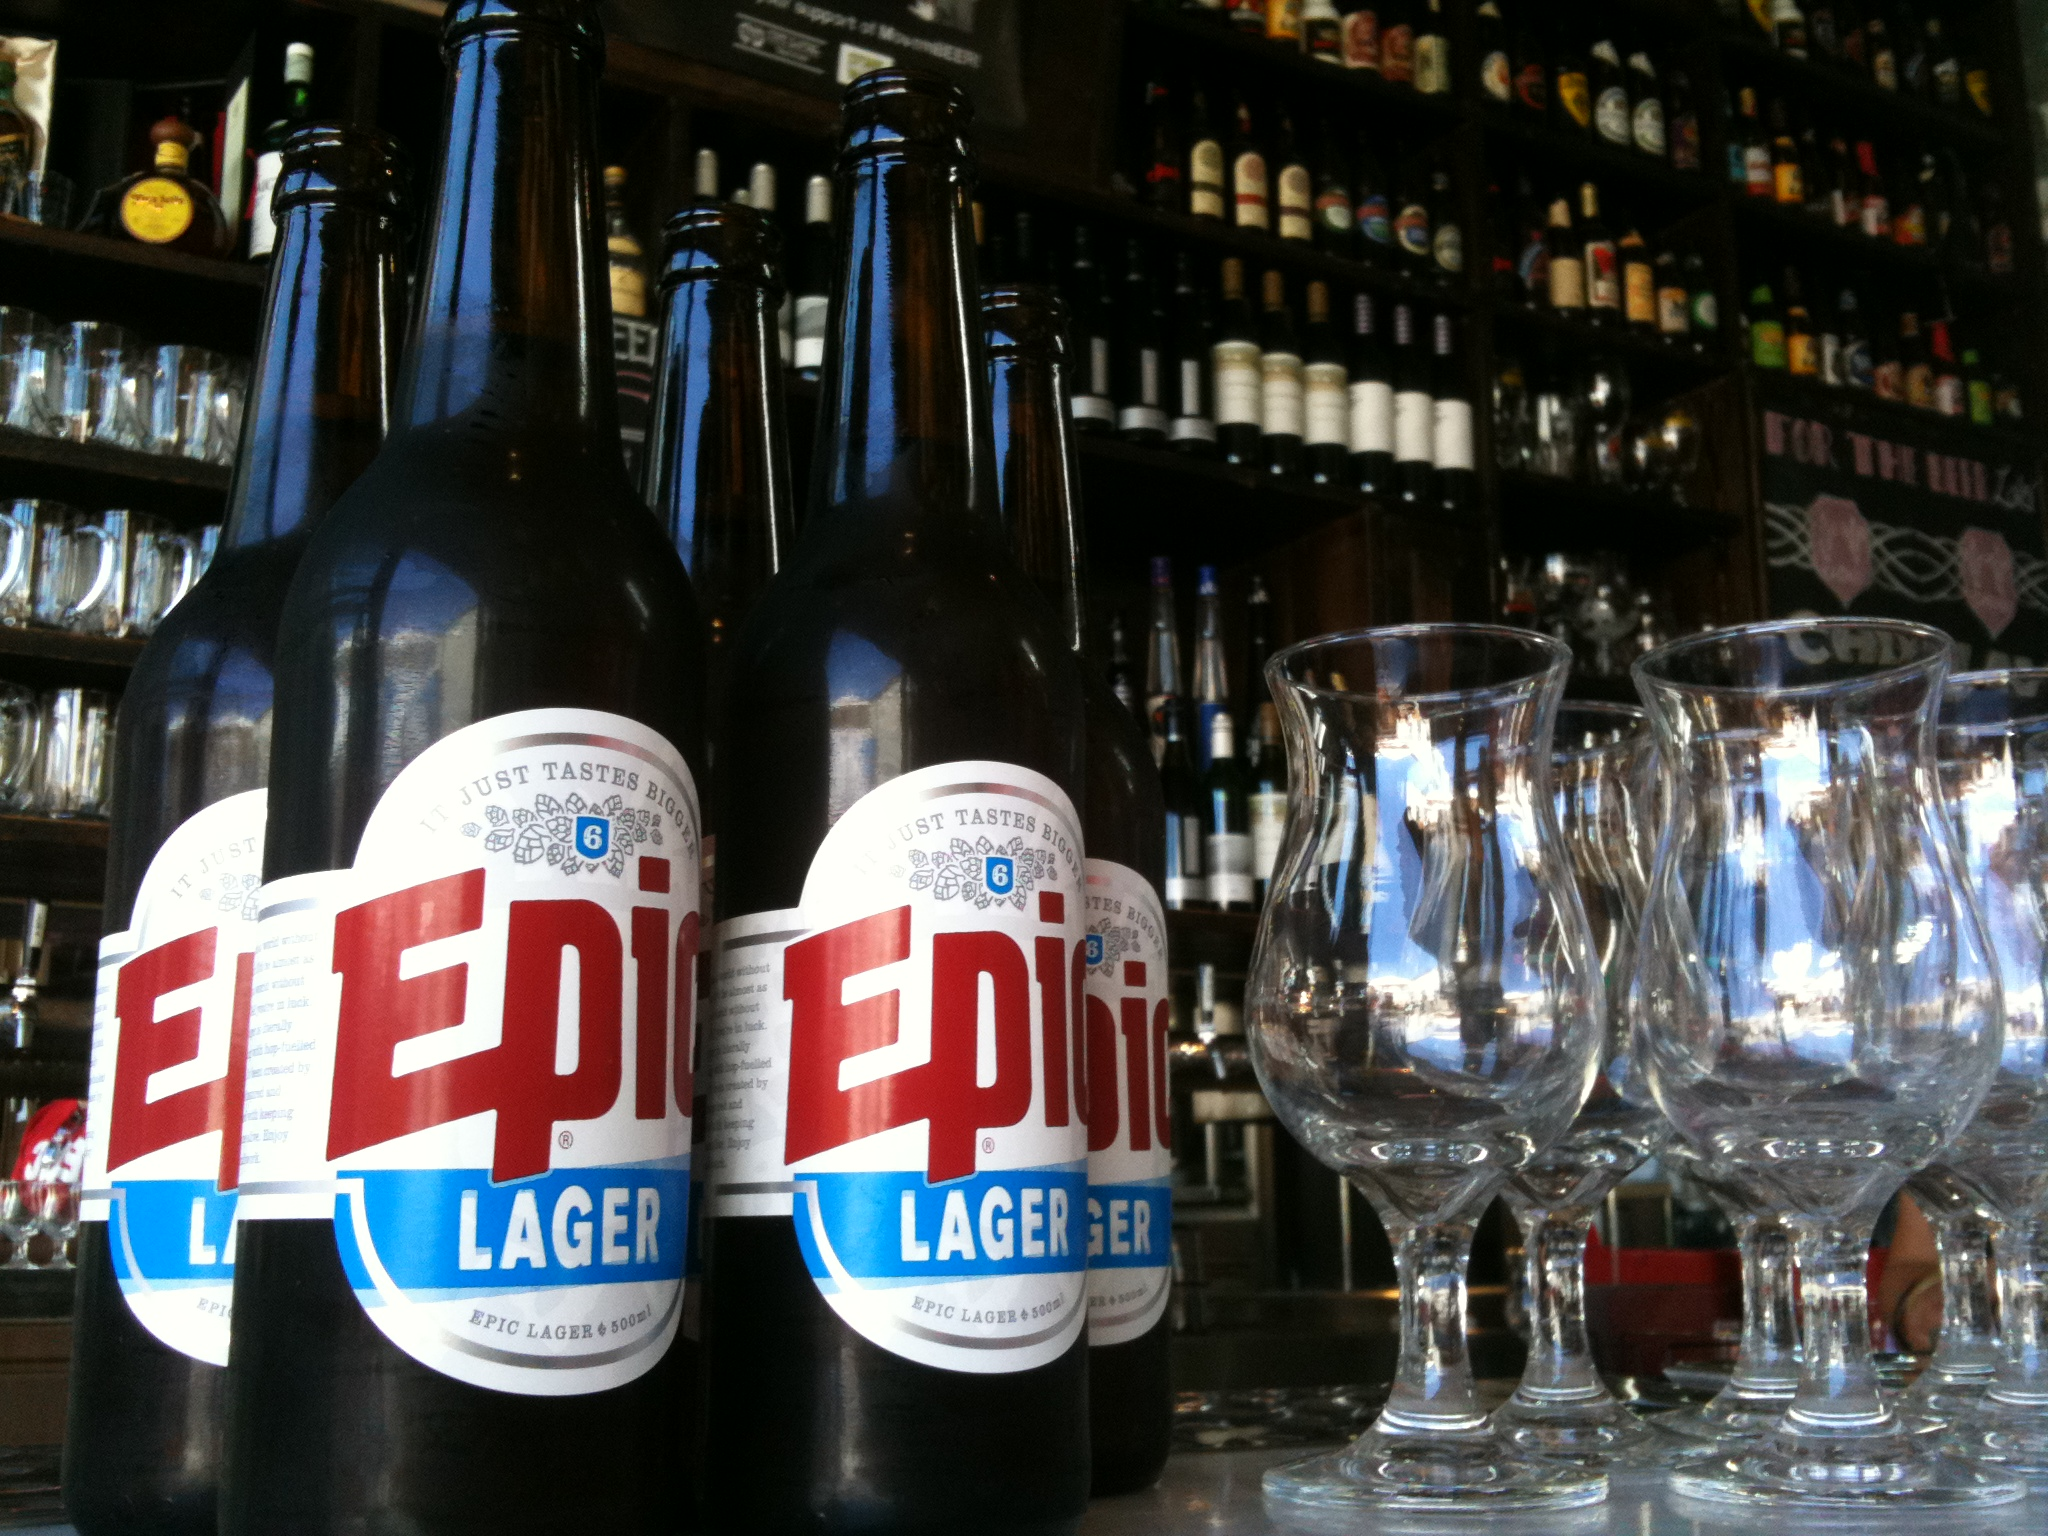 Epic Lager 500ml Bottle in Melbourne